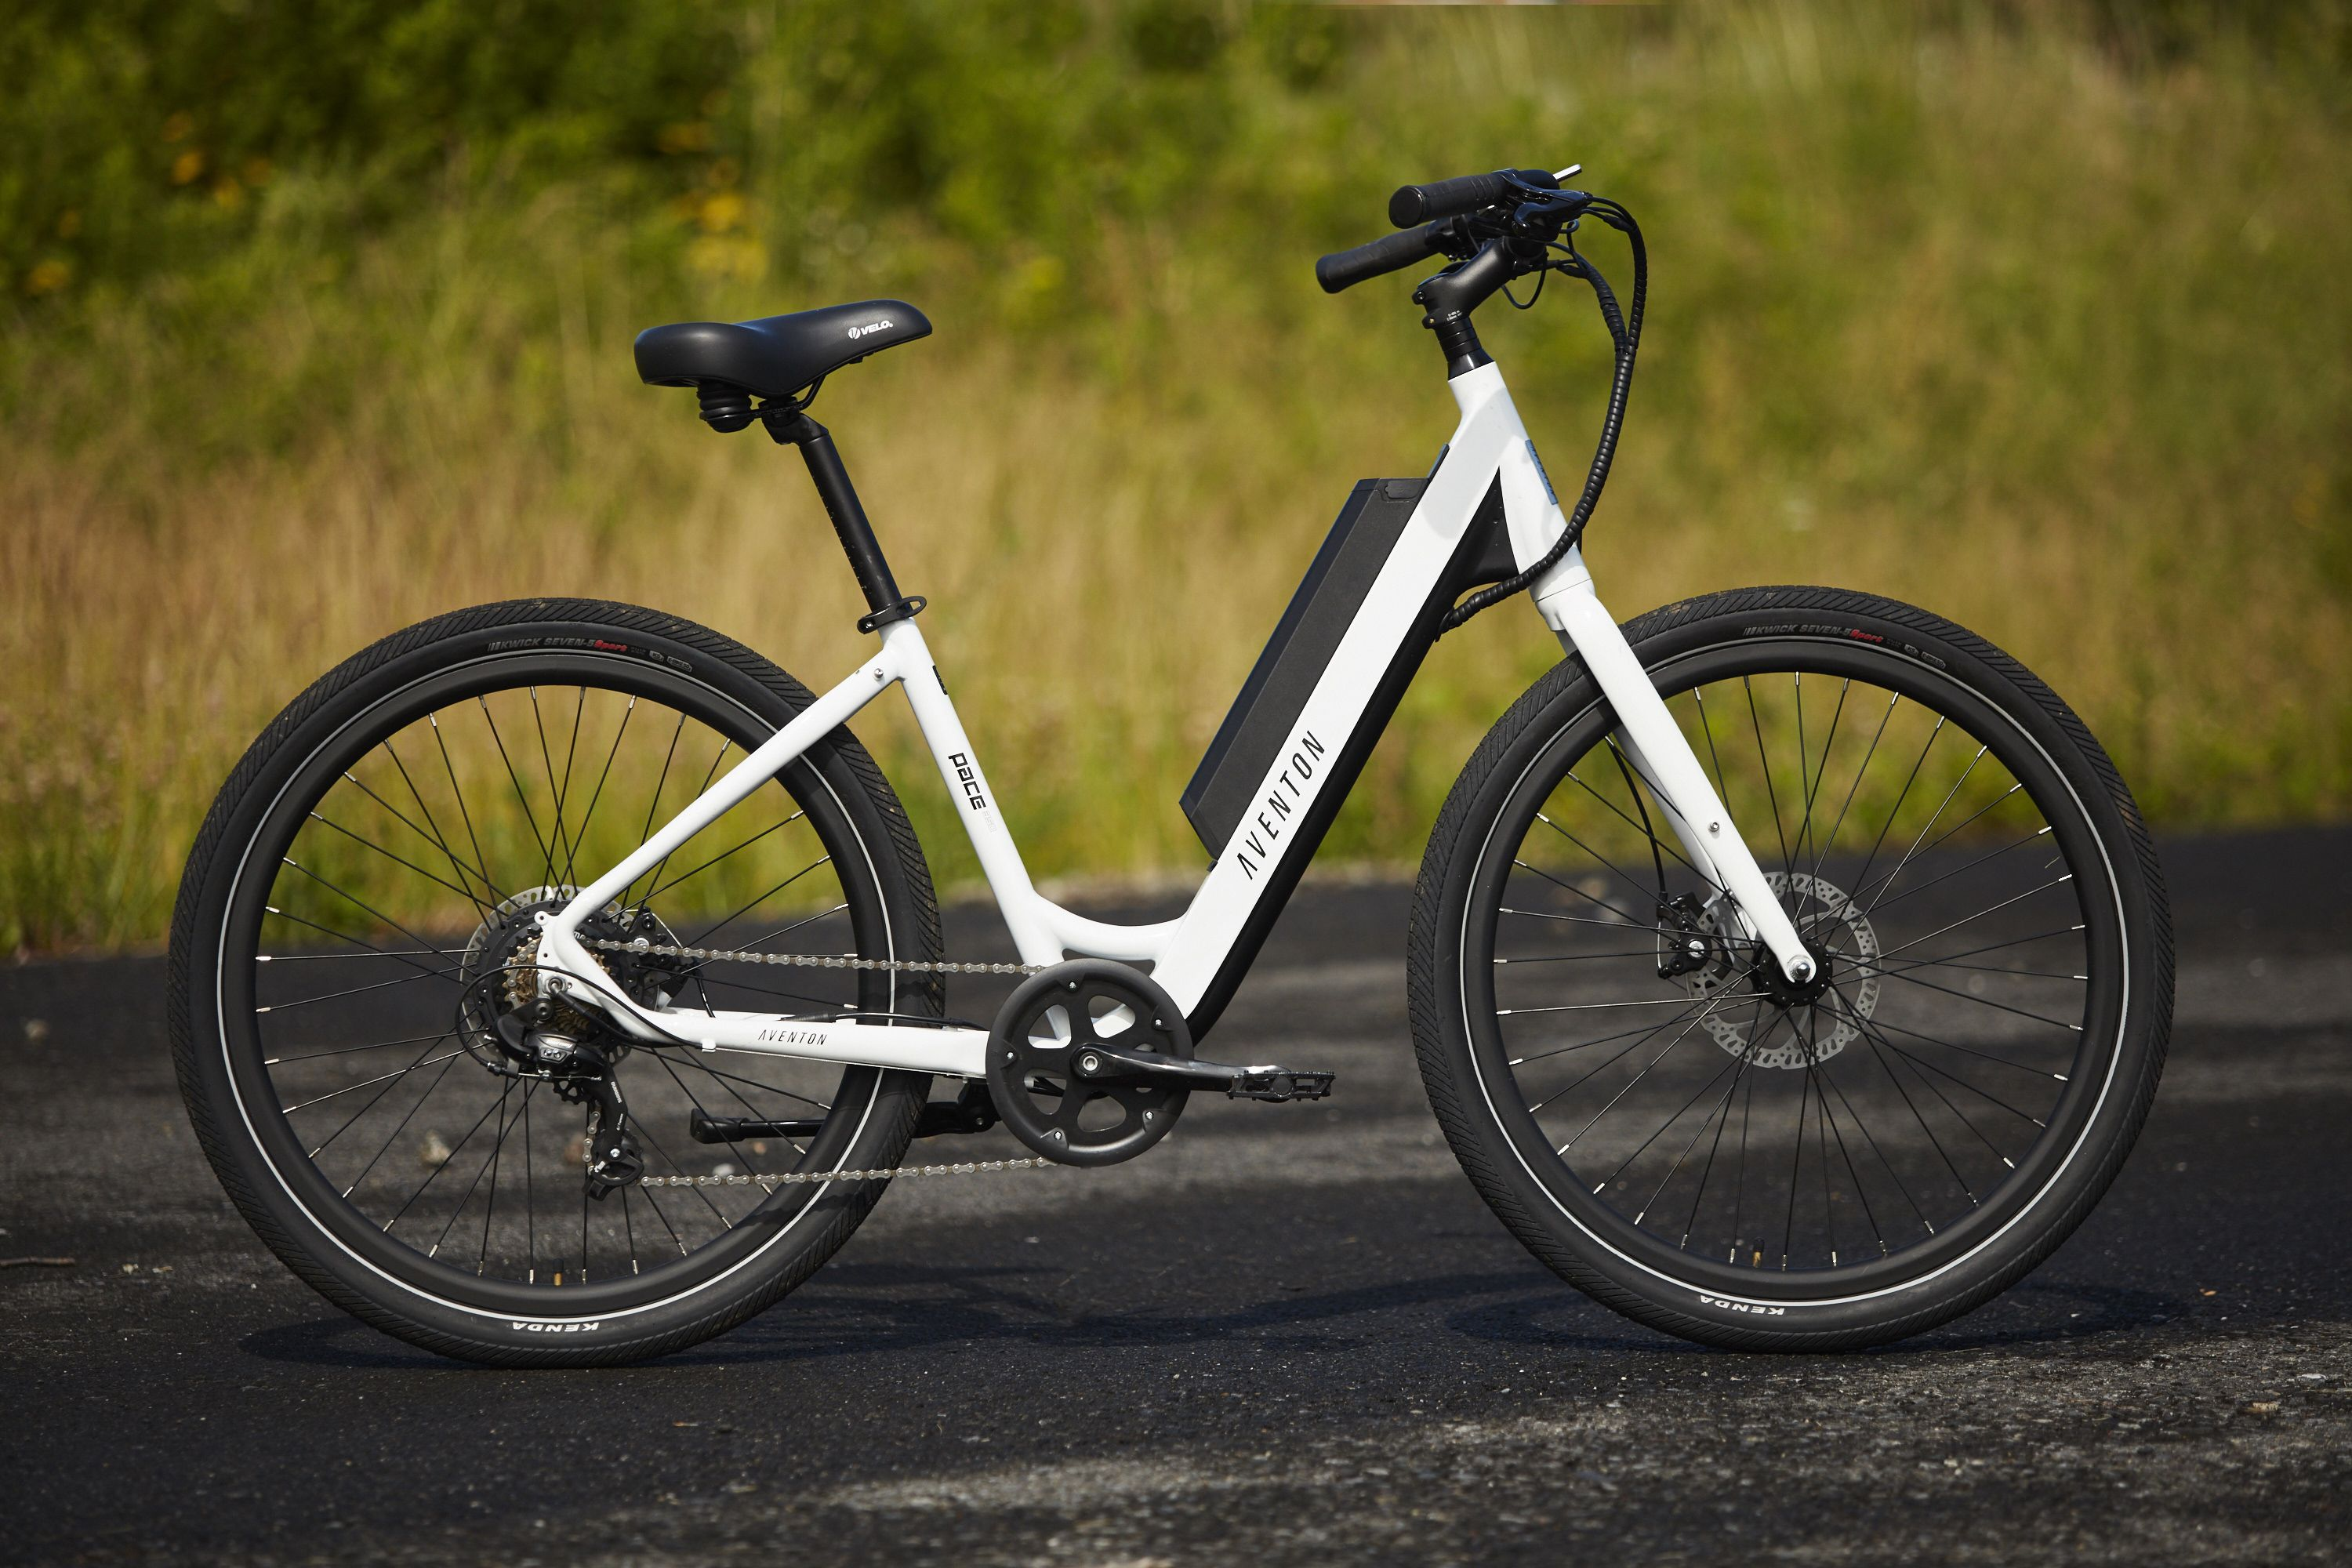 2019 Editors Choice For Best Electric Bikes Prices Specs Videos >> Aventon Pace 350 E Bike Review Best Cheap Electric Bikes 2019